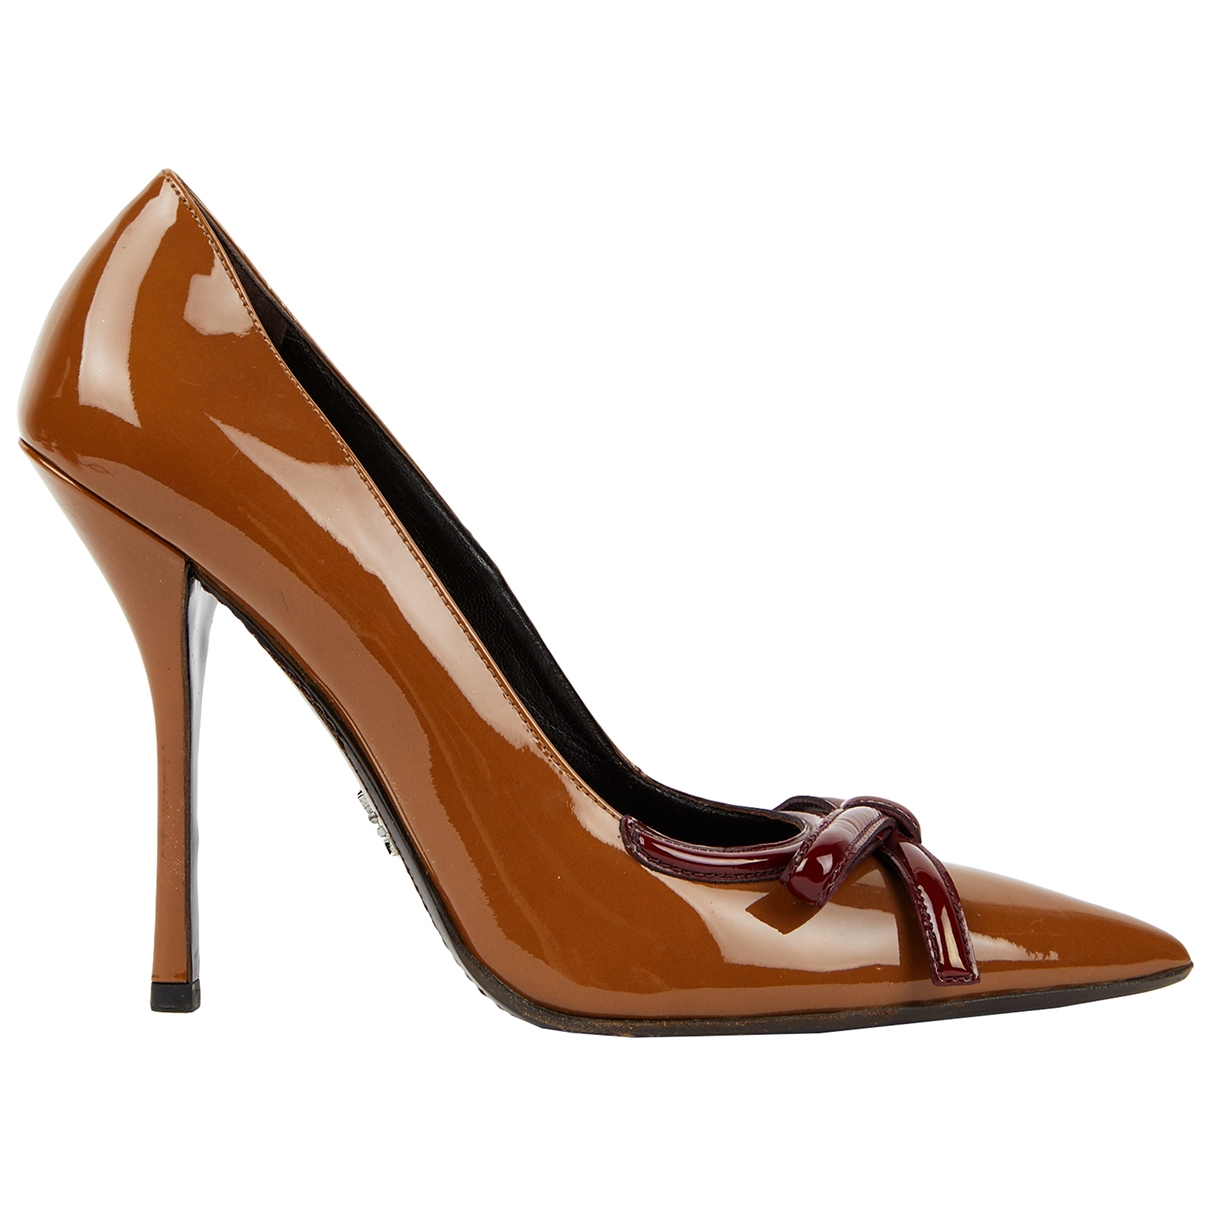 Prada \N Pumps in  Braun Lackleder